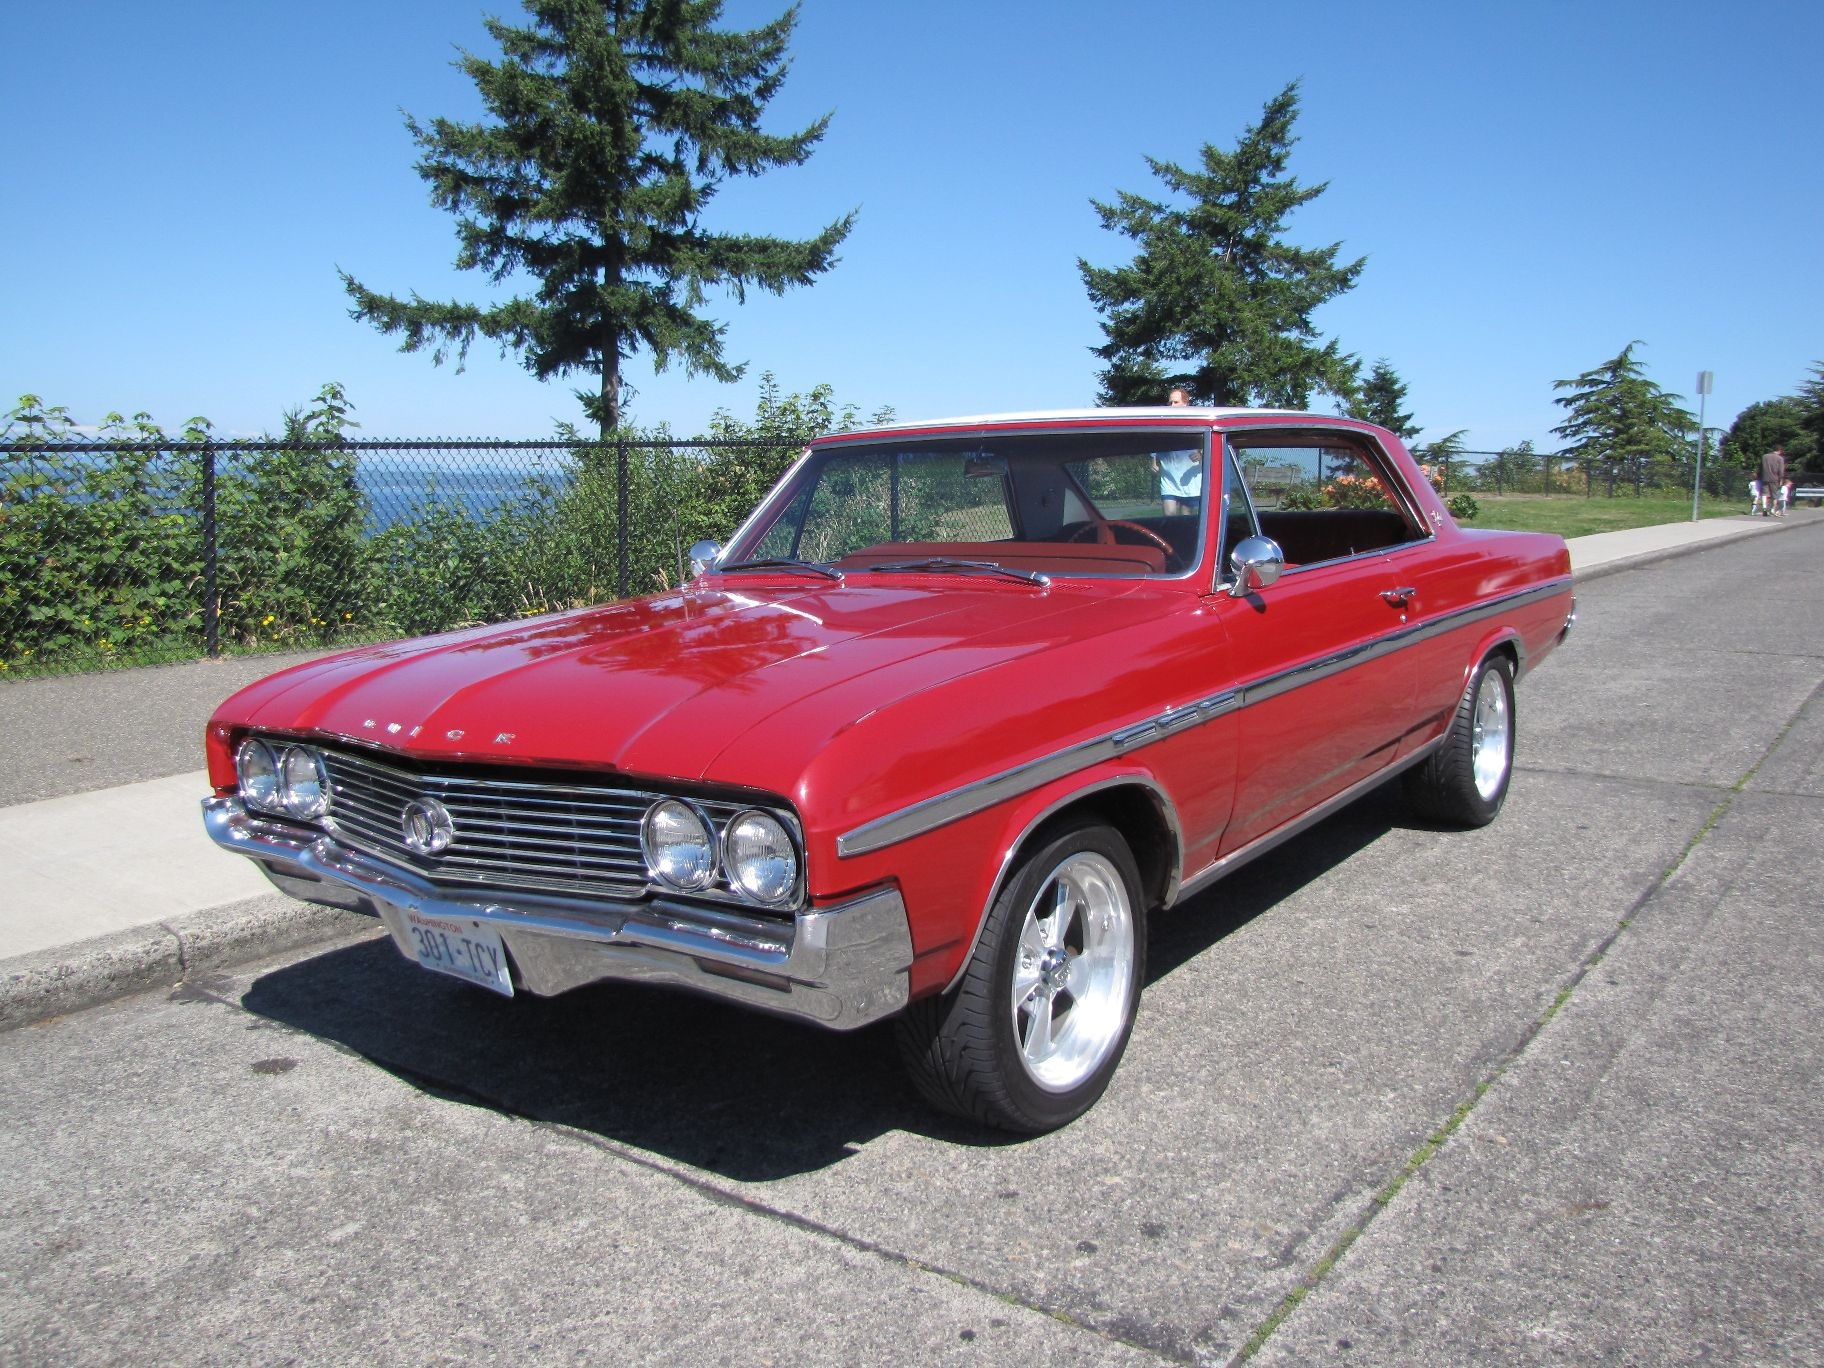 1964 Buick Skylark Muscle Classic Hot Rod Rods I Jpg